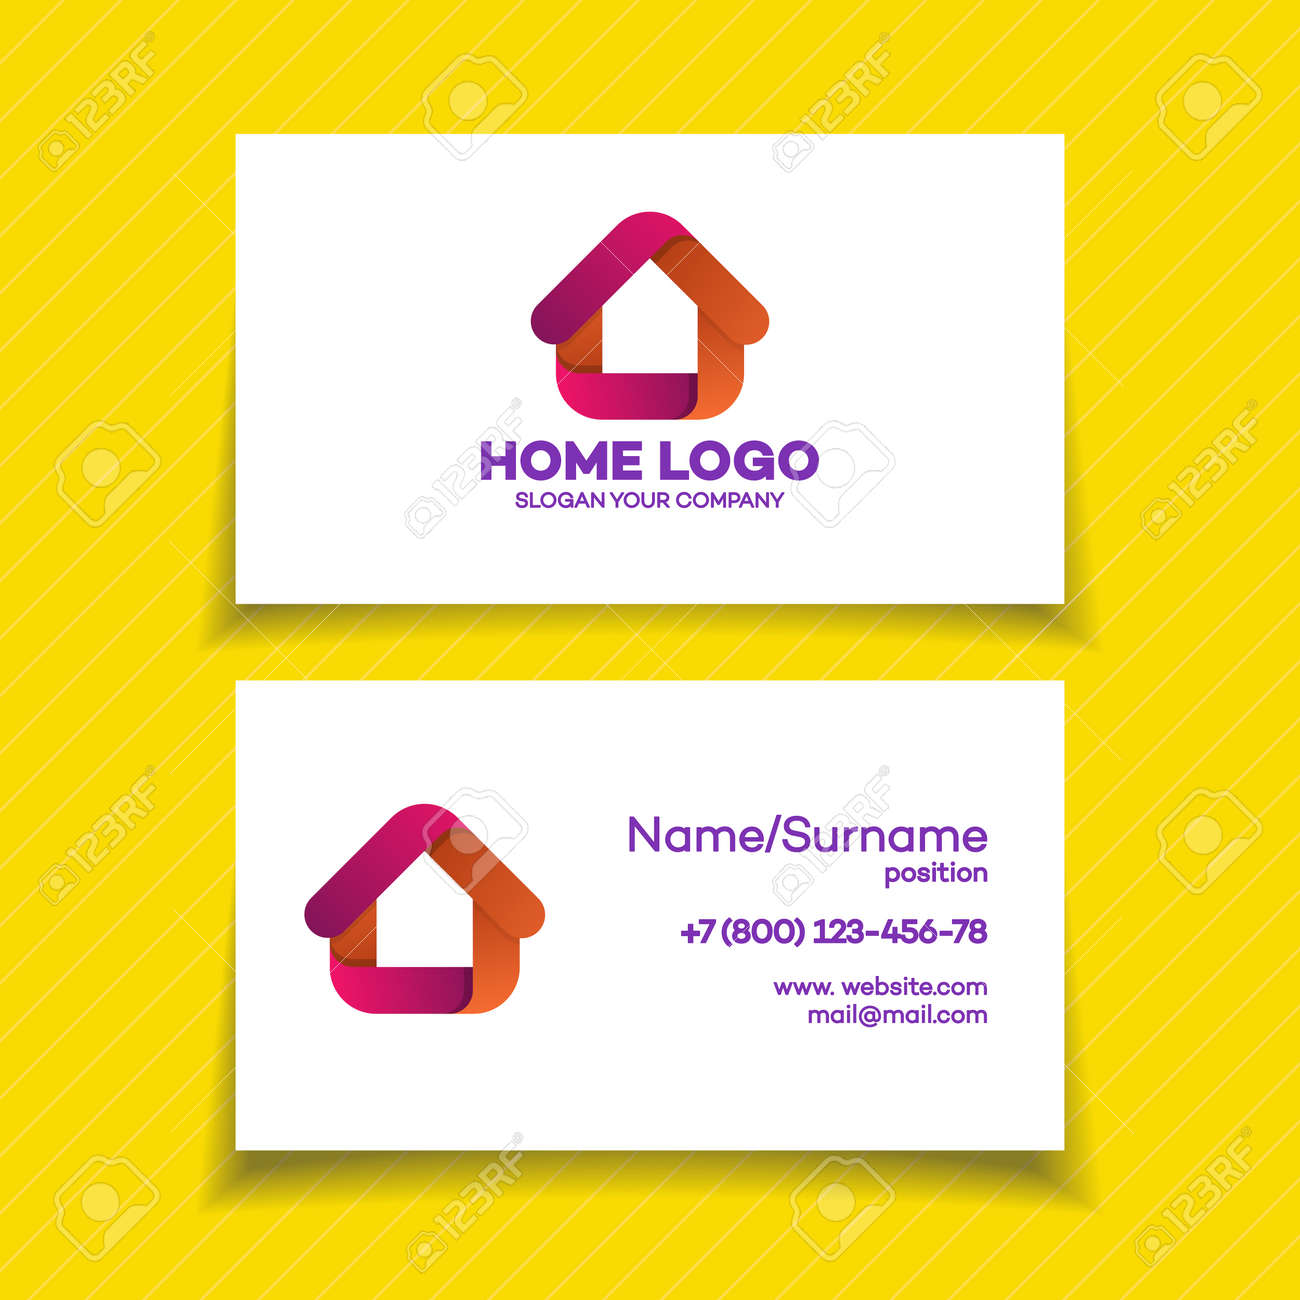 Business Card Design Template With Home Logo On White Background For Used Corporate Identity Smart